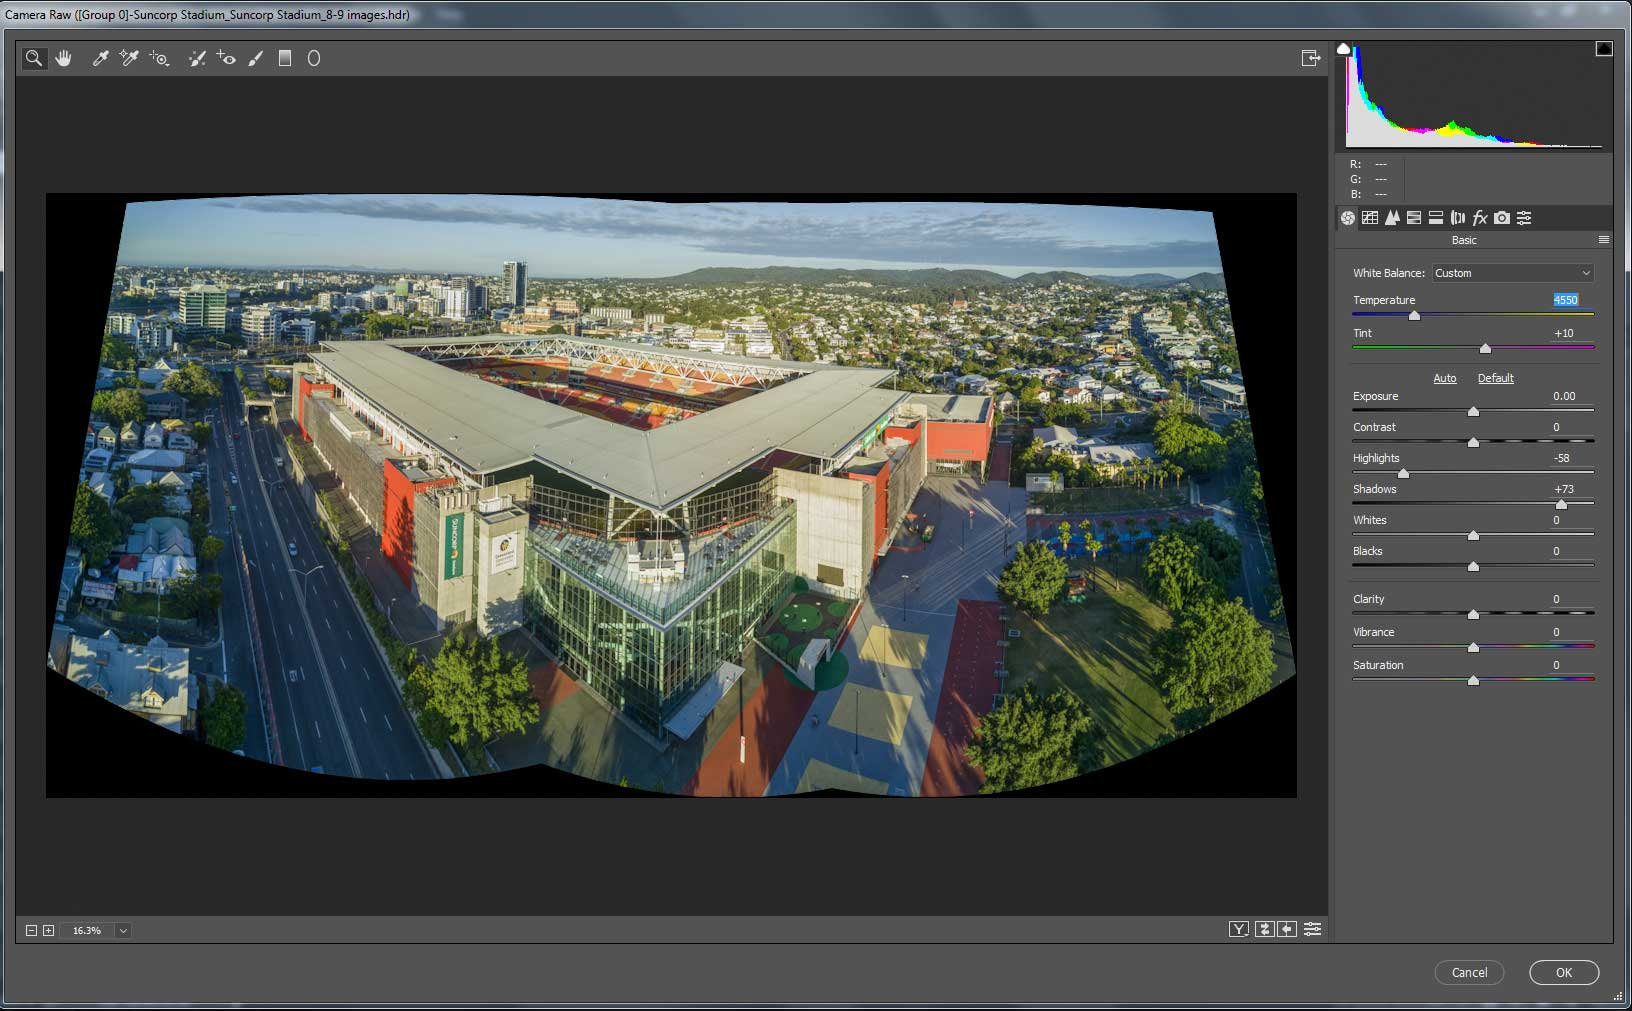 Suncorp Stadium Aerial Drone Panorama HDR DroneAce